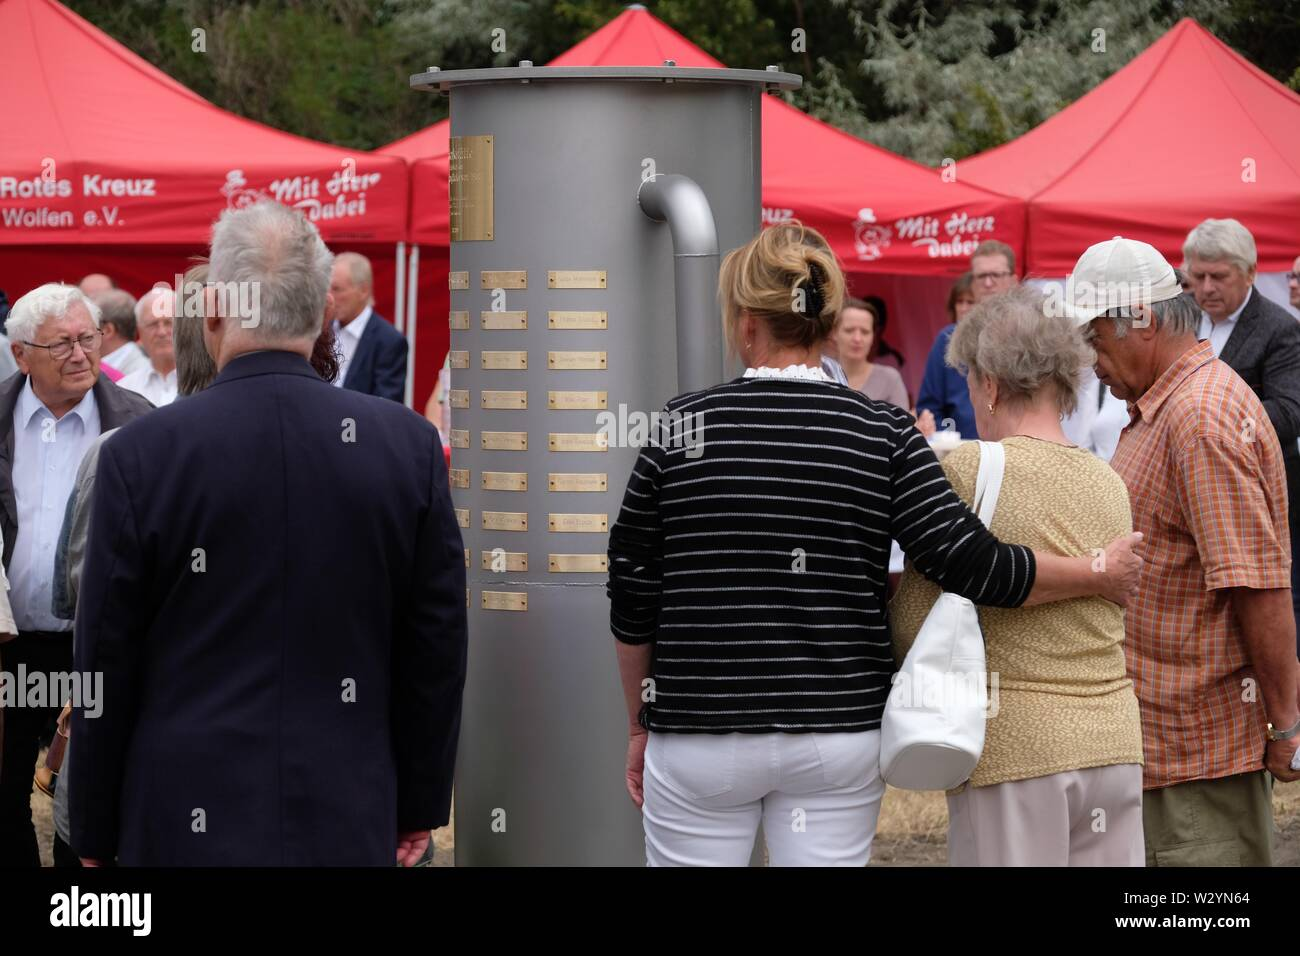 Bitterfeld Wolfen, Germany. 11th July, 2019. Participants in a commemoration ceremony stand at a monument in the Chemical Park. A stele commemorates the victims of the chemical accident of 11.07.1968, when 40 people died and more than 240 were injured. Credit: Sebastian Willnow/dpa-Zentralbild/dpa/Alamy Live News - Stock Image